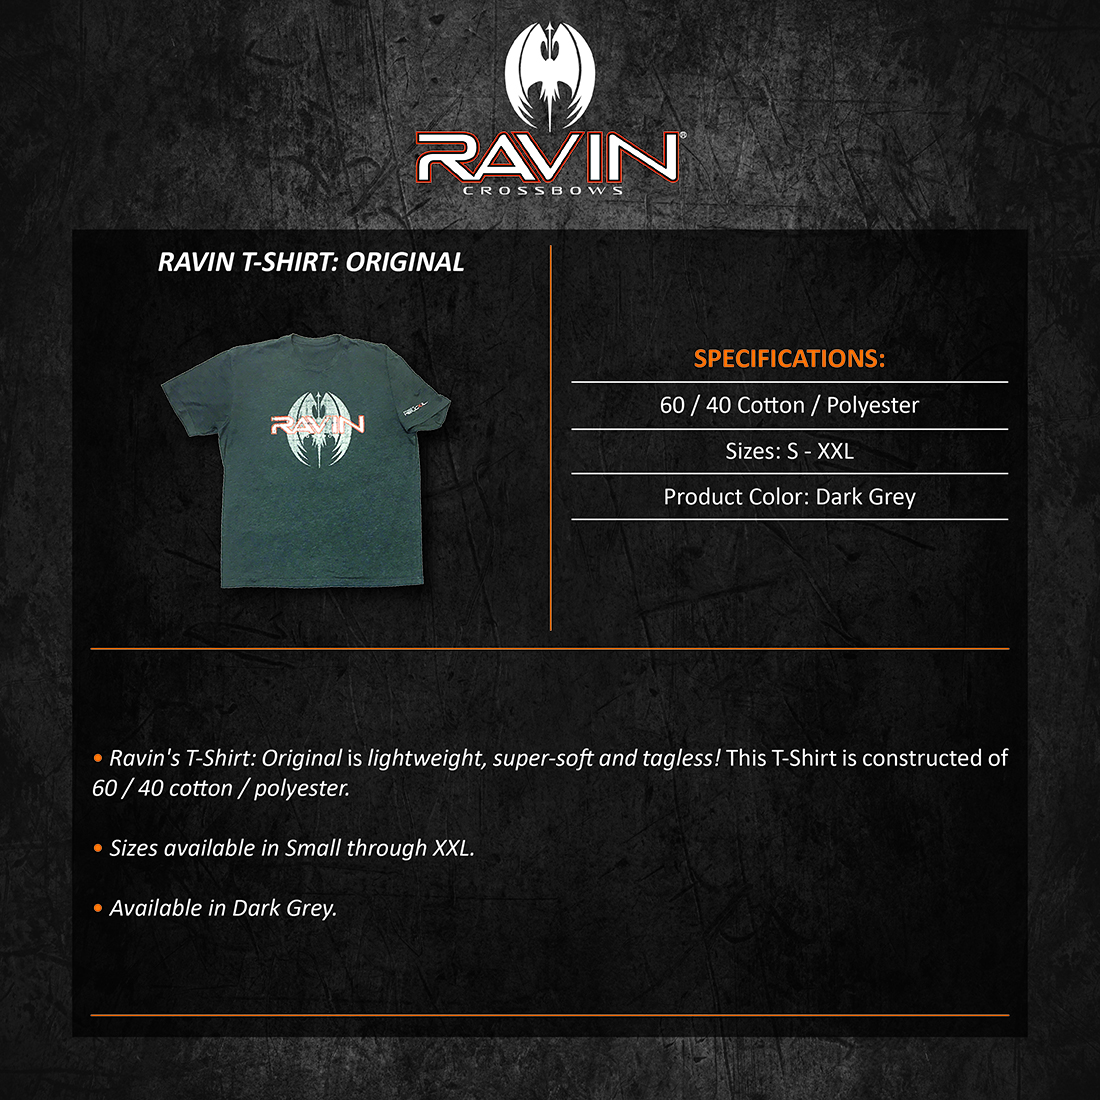 Ravin_Tshirt_Original_Product_Description